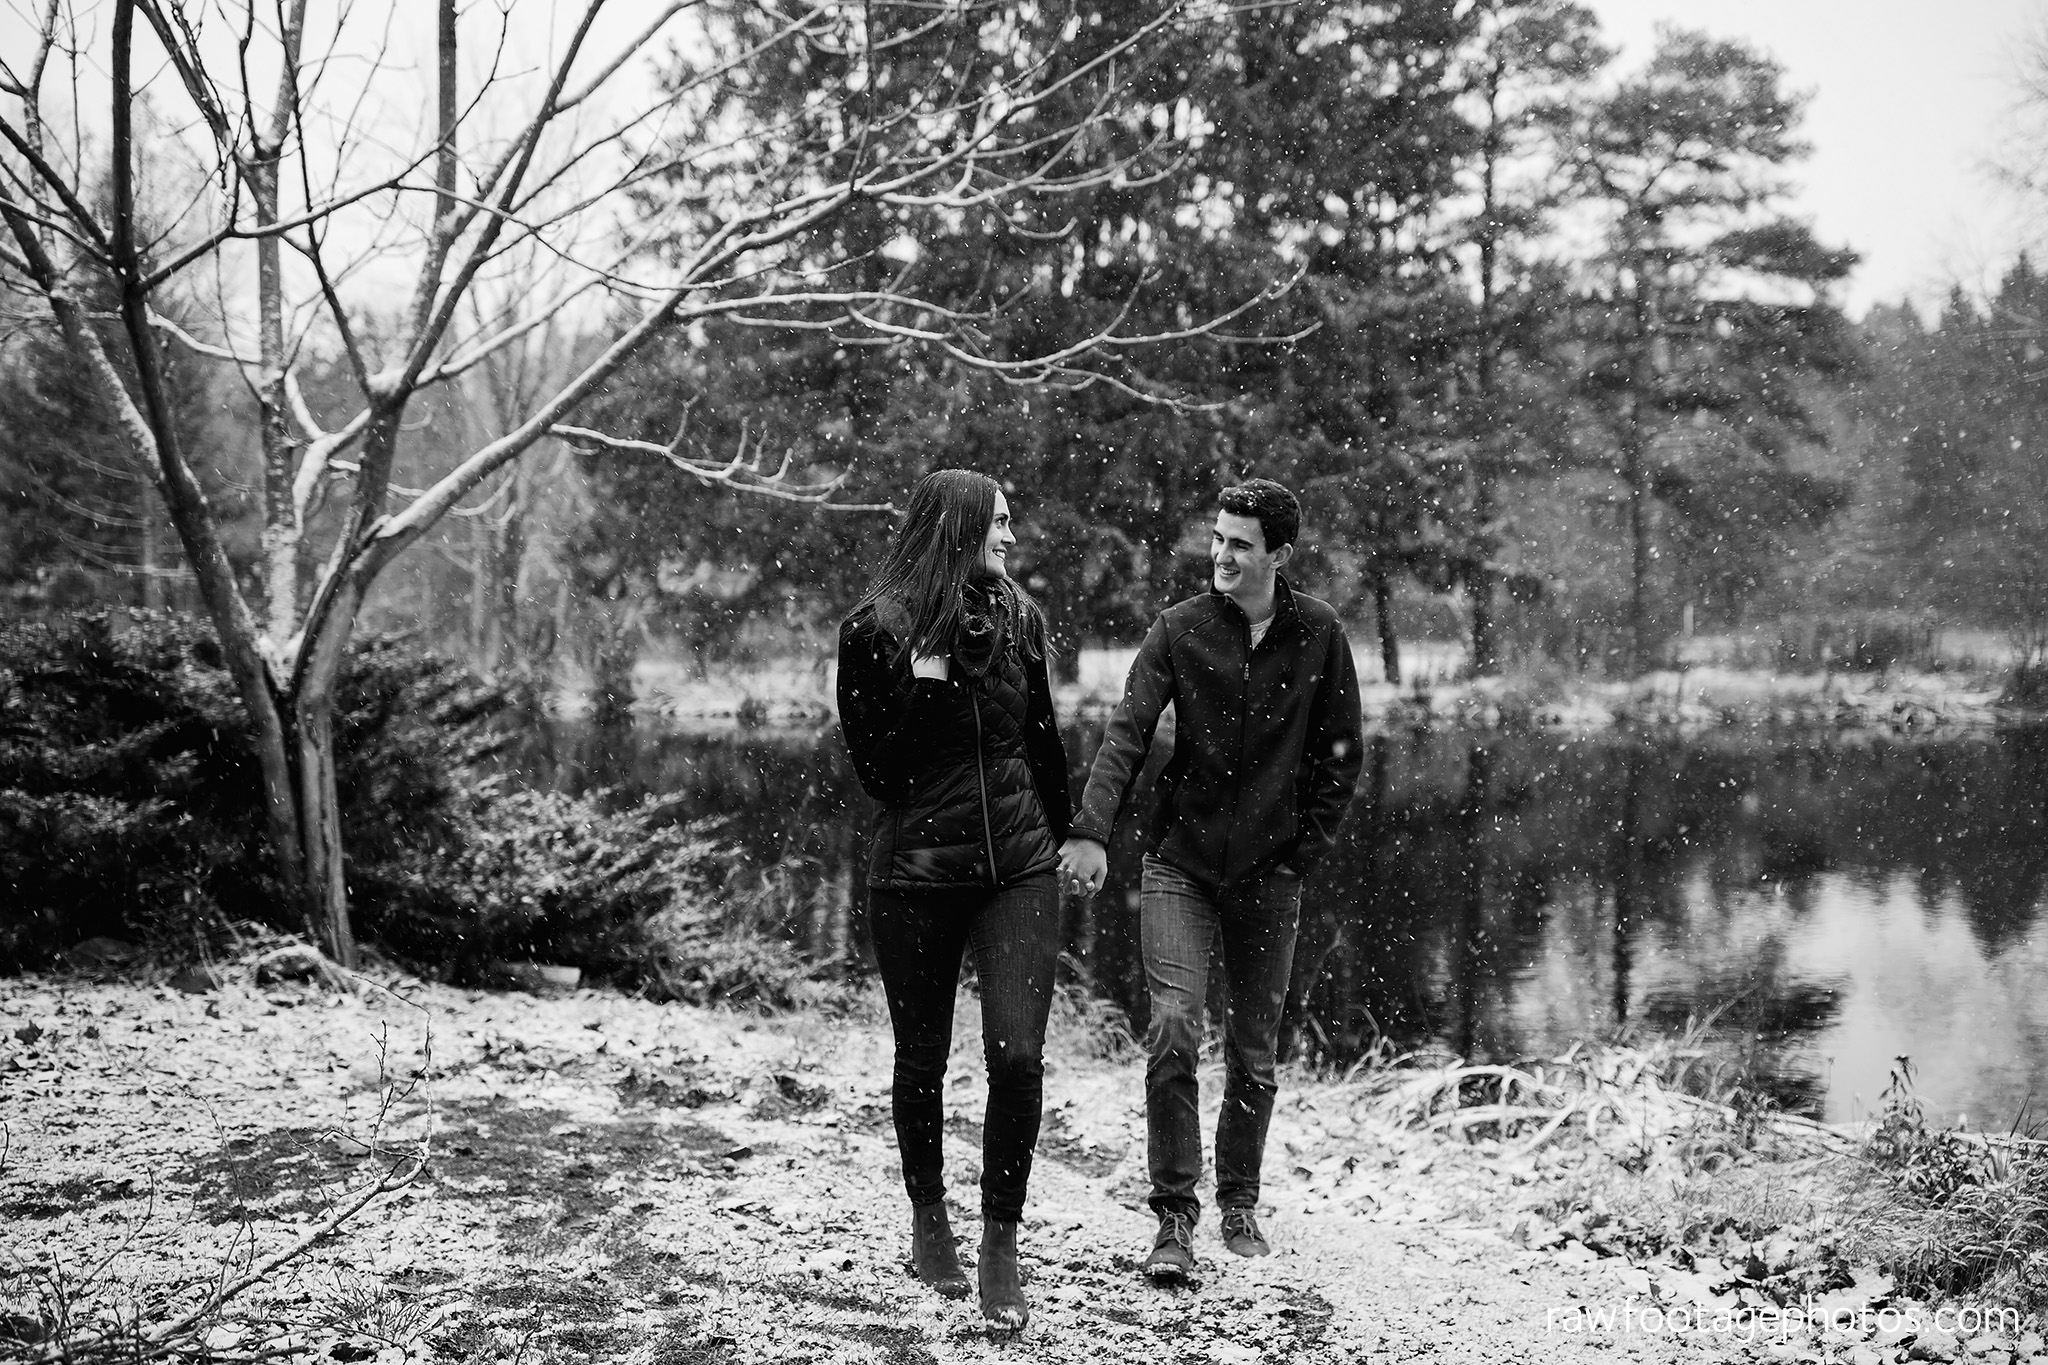 london_ontario_wedding_photographer-snowy_engagement_session-winter-barn-farm-snowflakes-blizzard-raw_footage_photography006.jpg